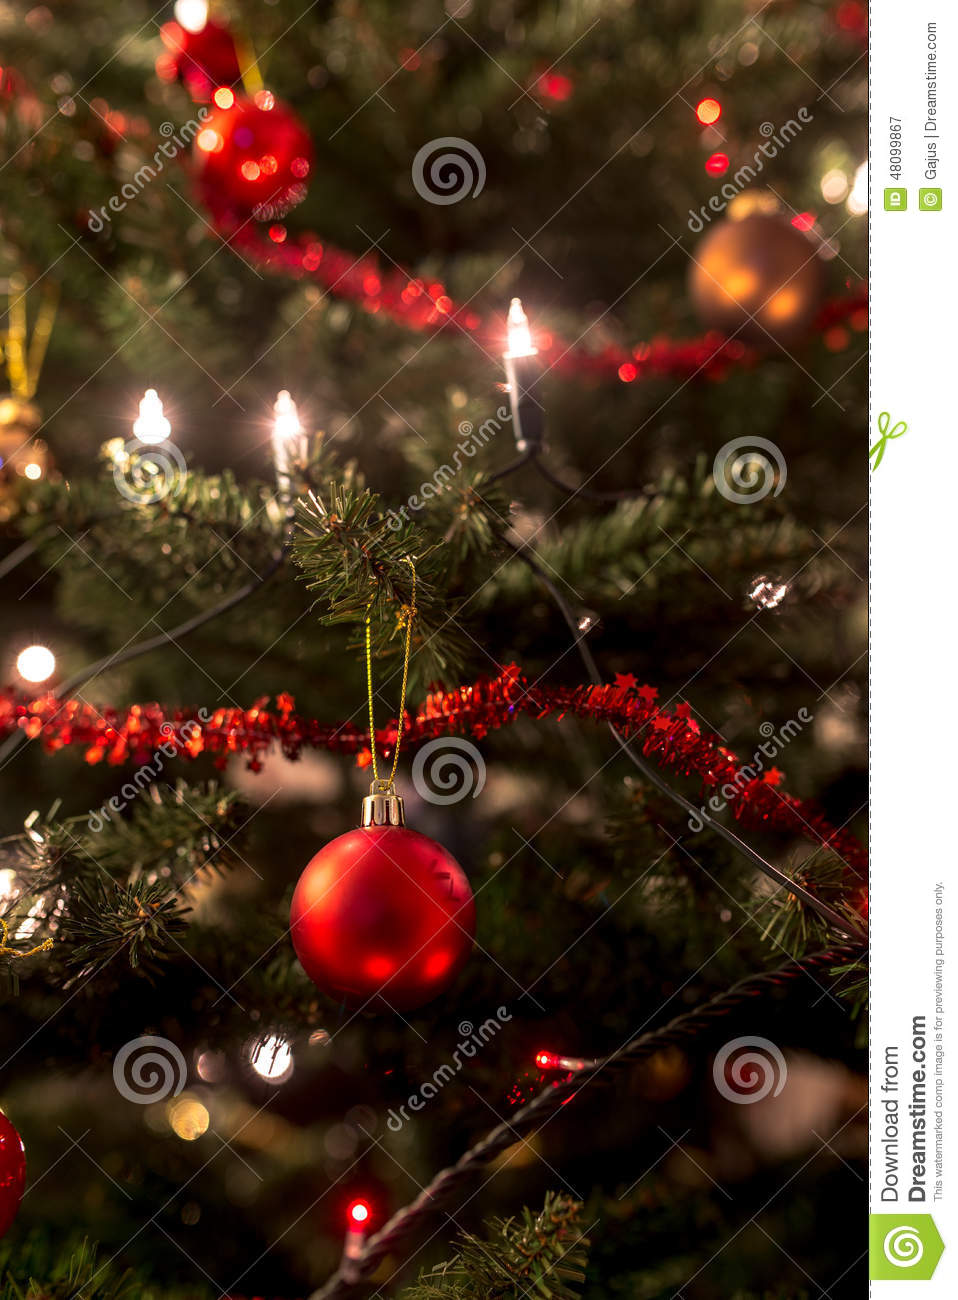 Christmas tree decorated with tinsel - Christmas Tree Decorated With Lights And Tinsel